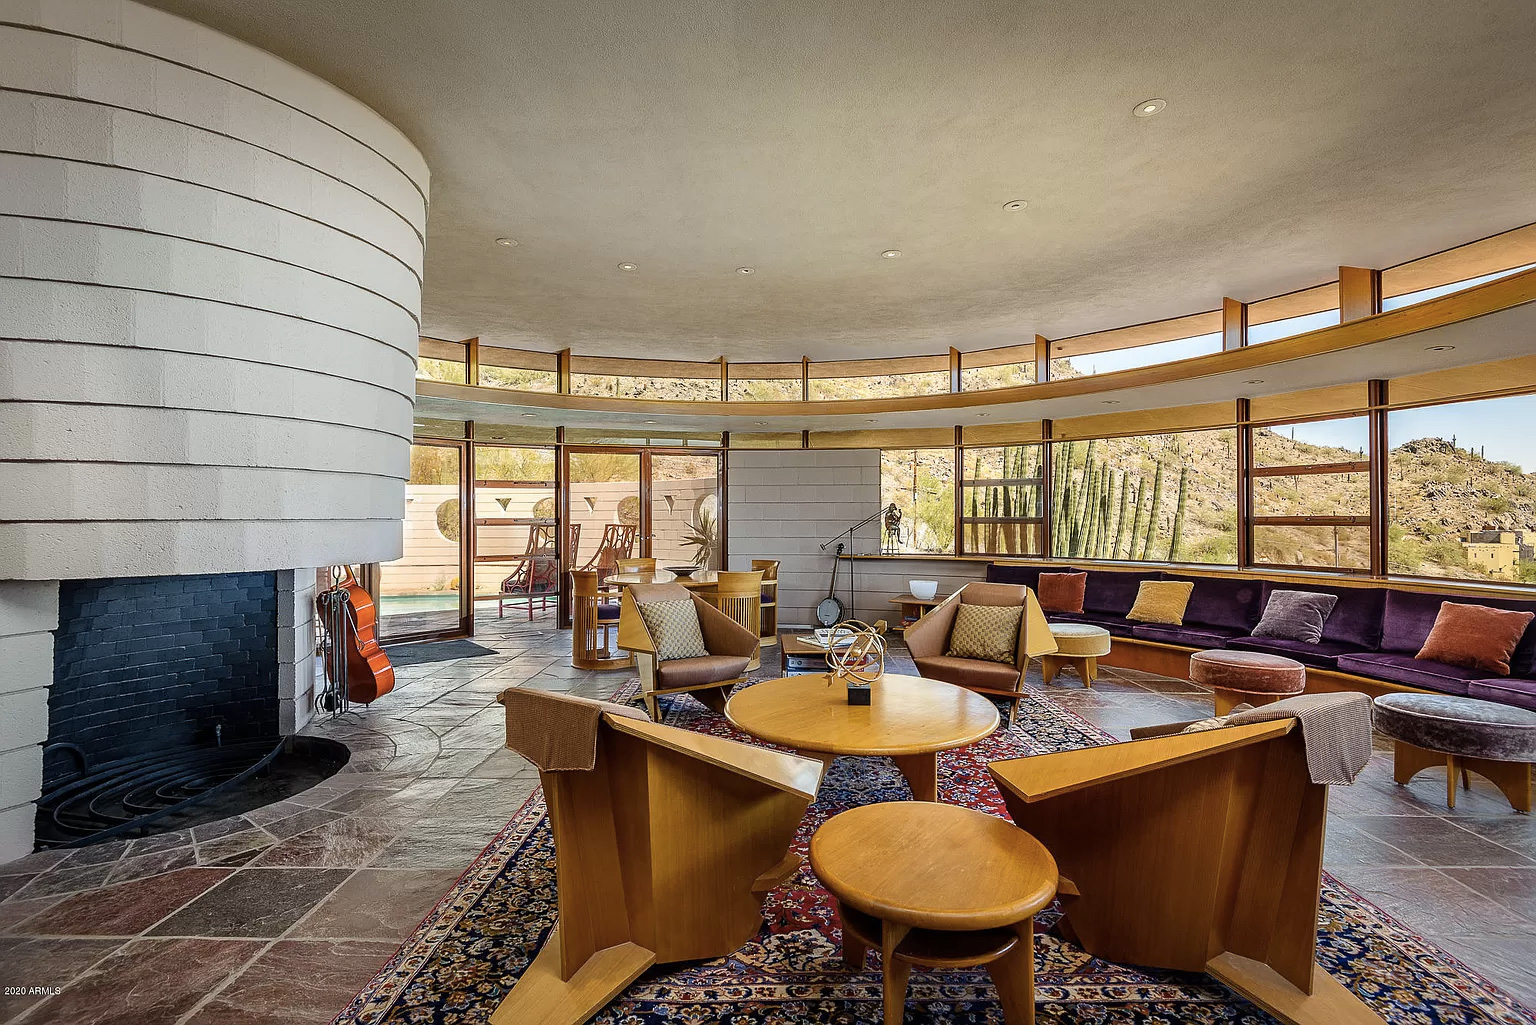 Frank Lloyd Wright's last home The Norman Lykes Residence is for sale